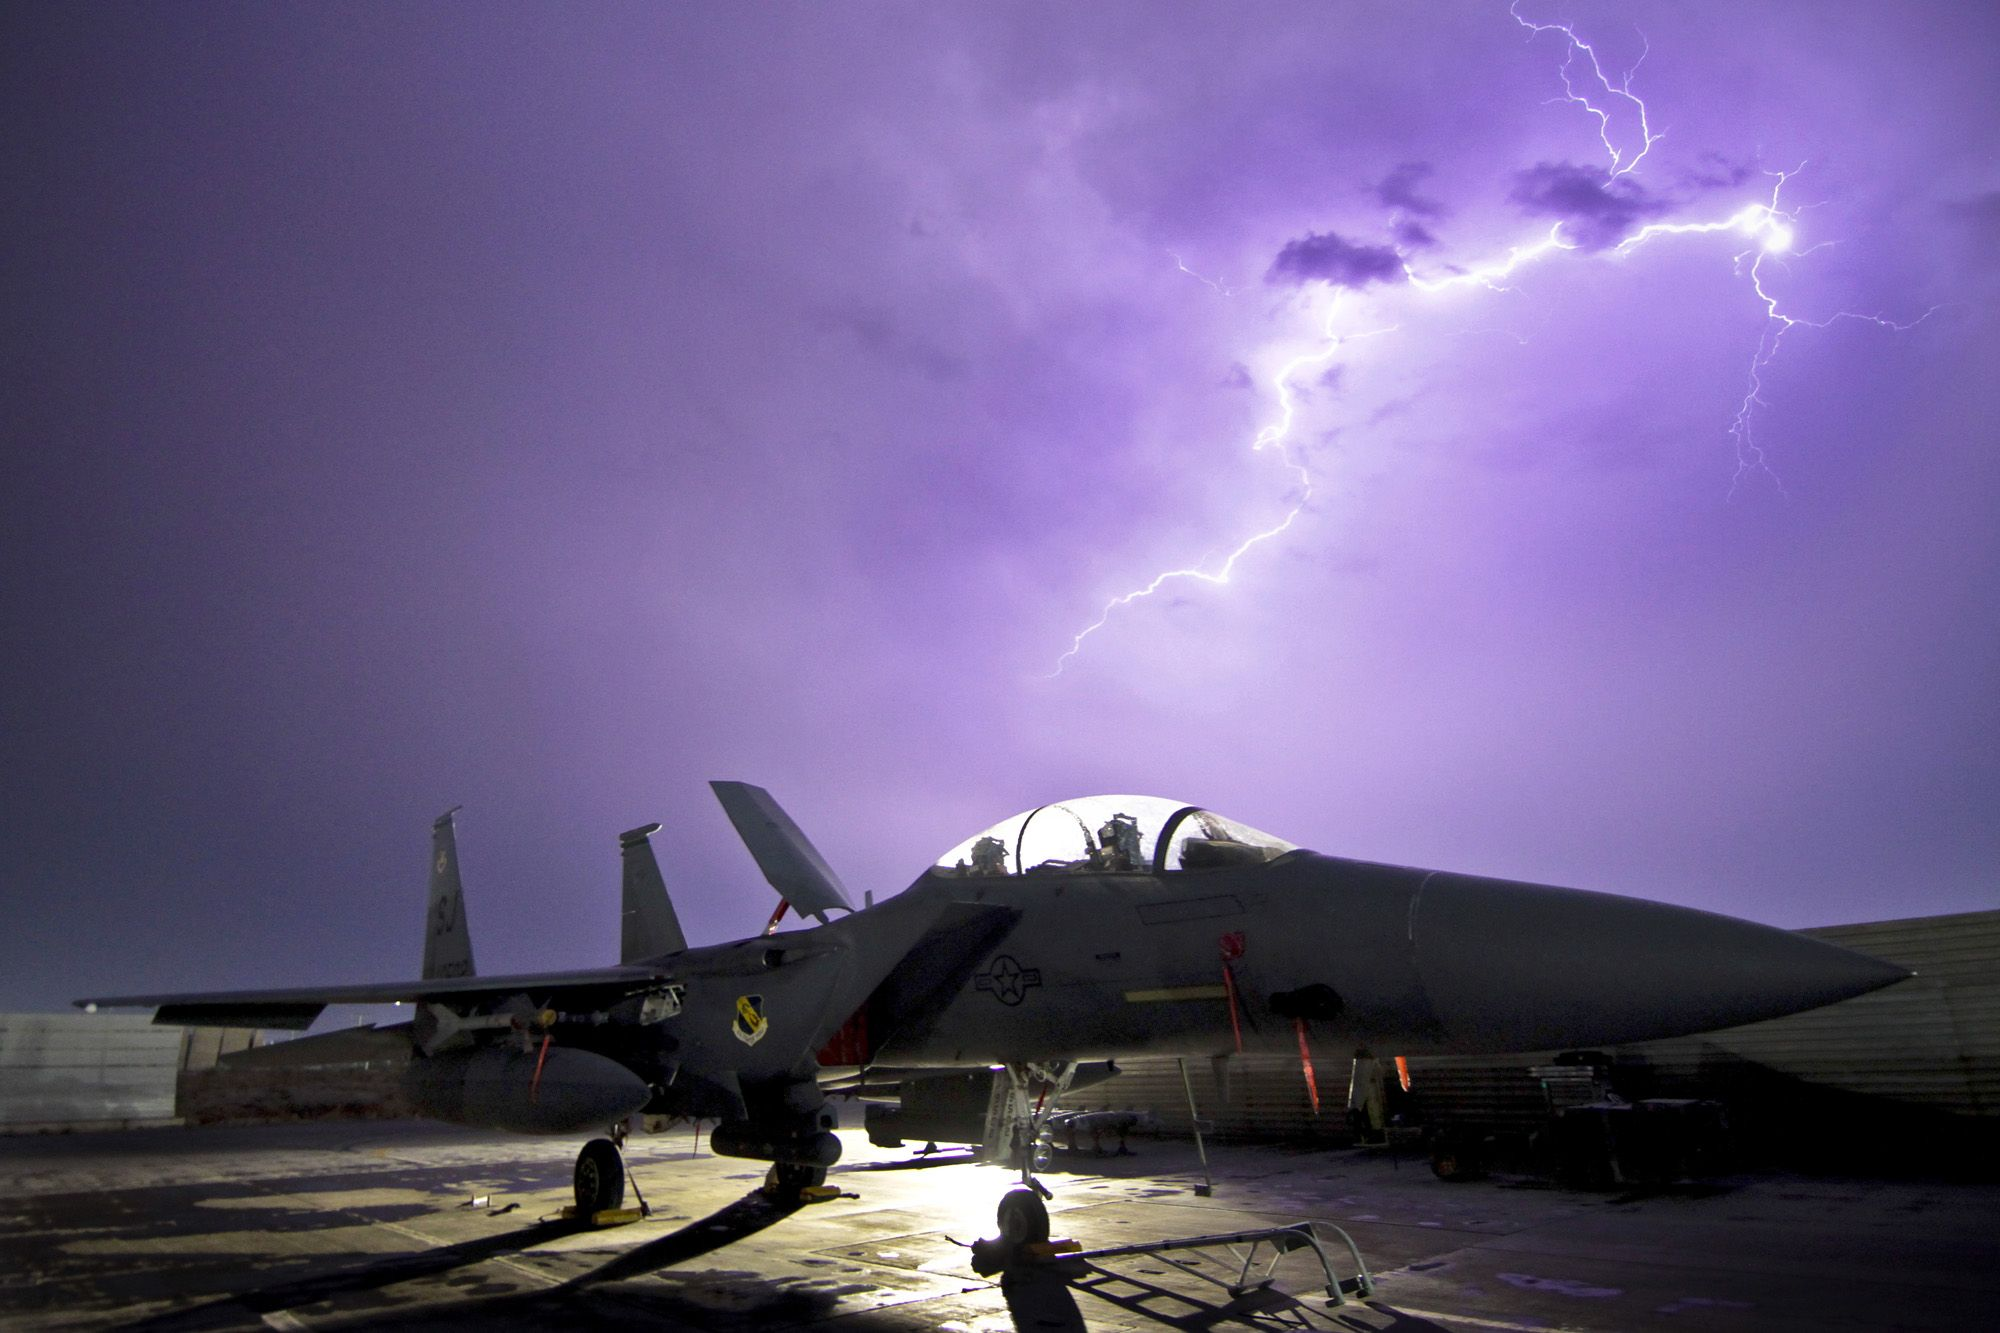 F15E Strike Eagle illuminated by lightning storm at